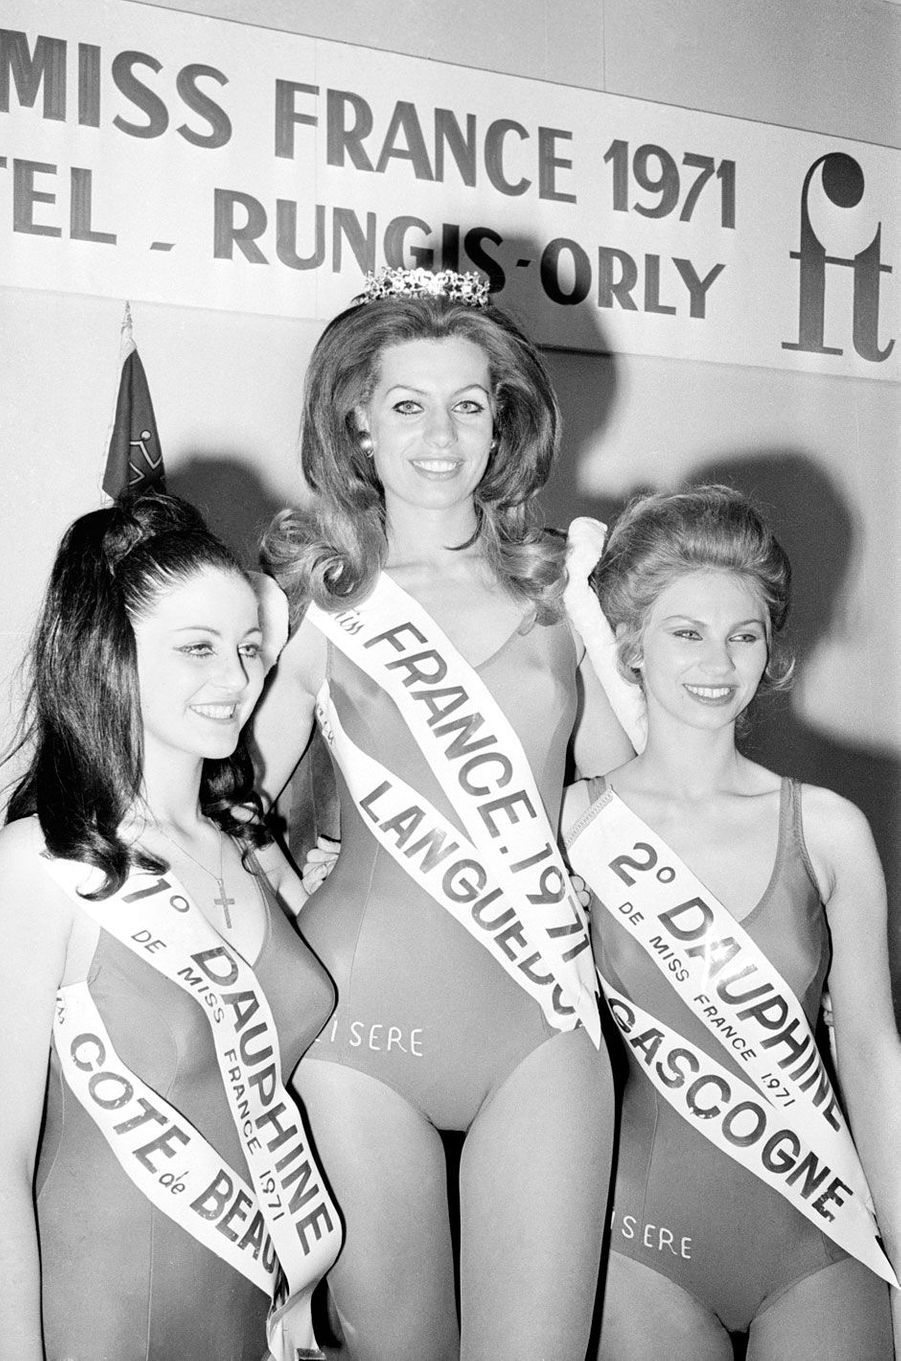 Miss France 1971, Myriam Stocco